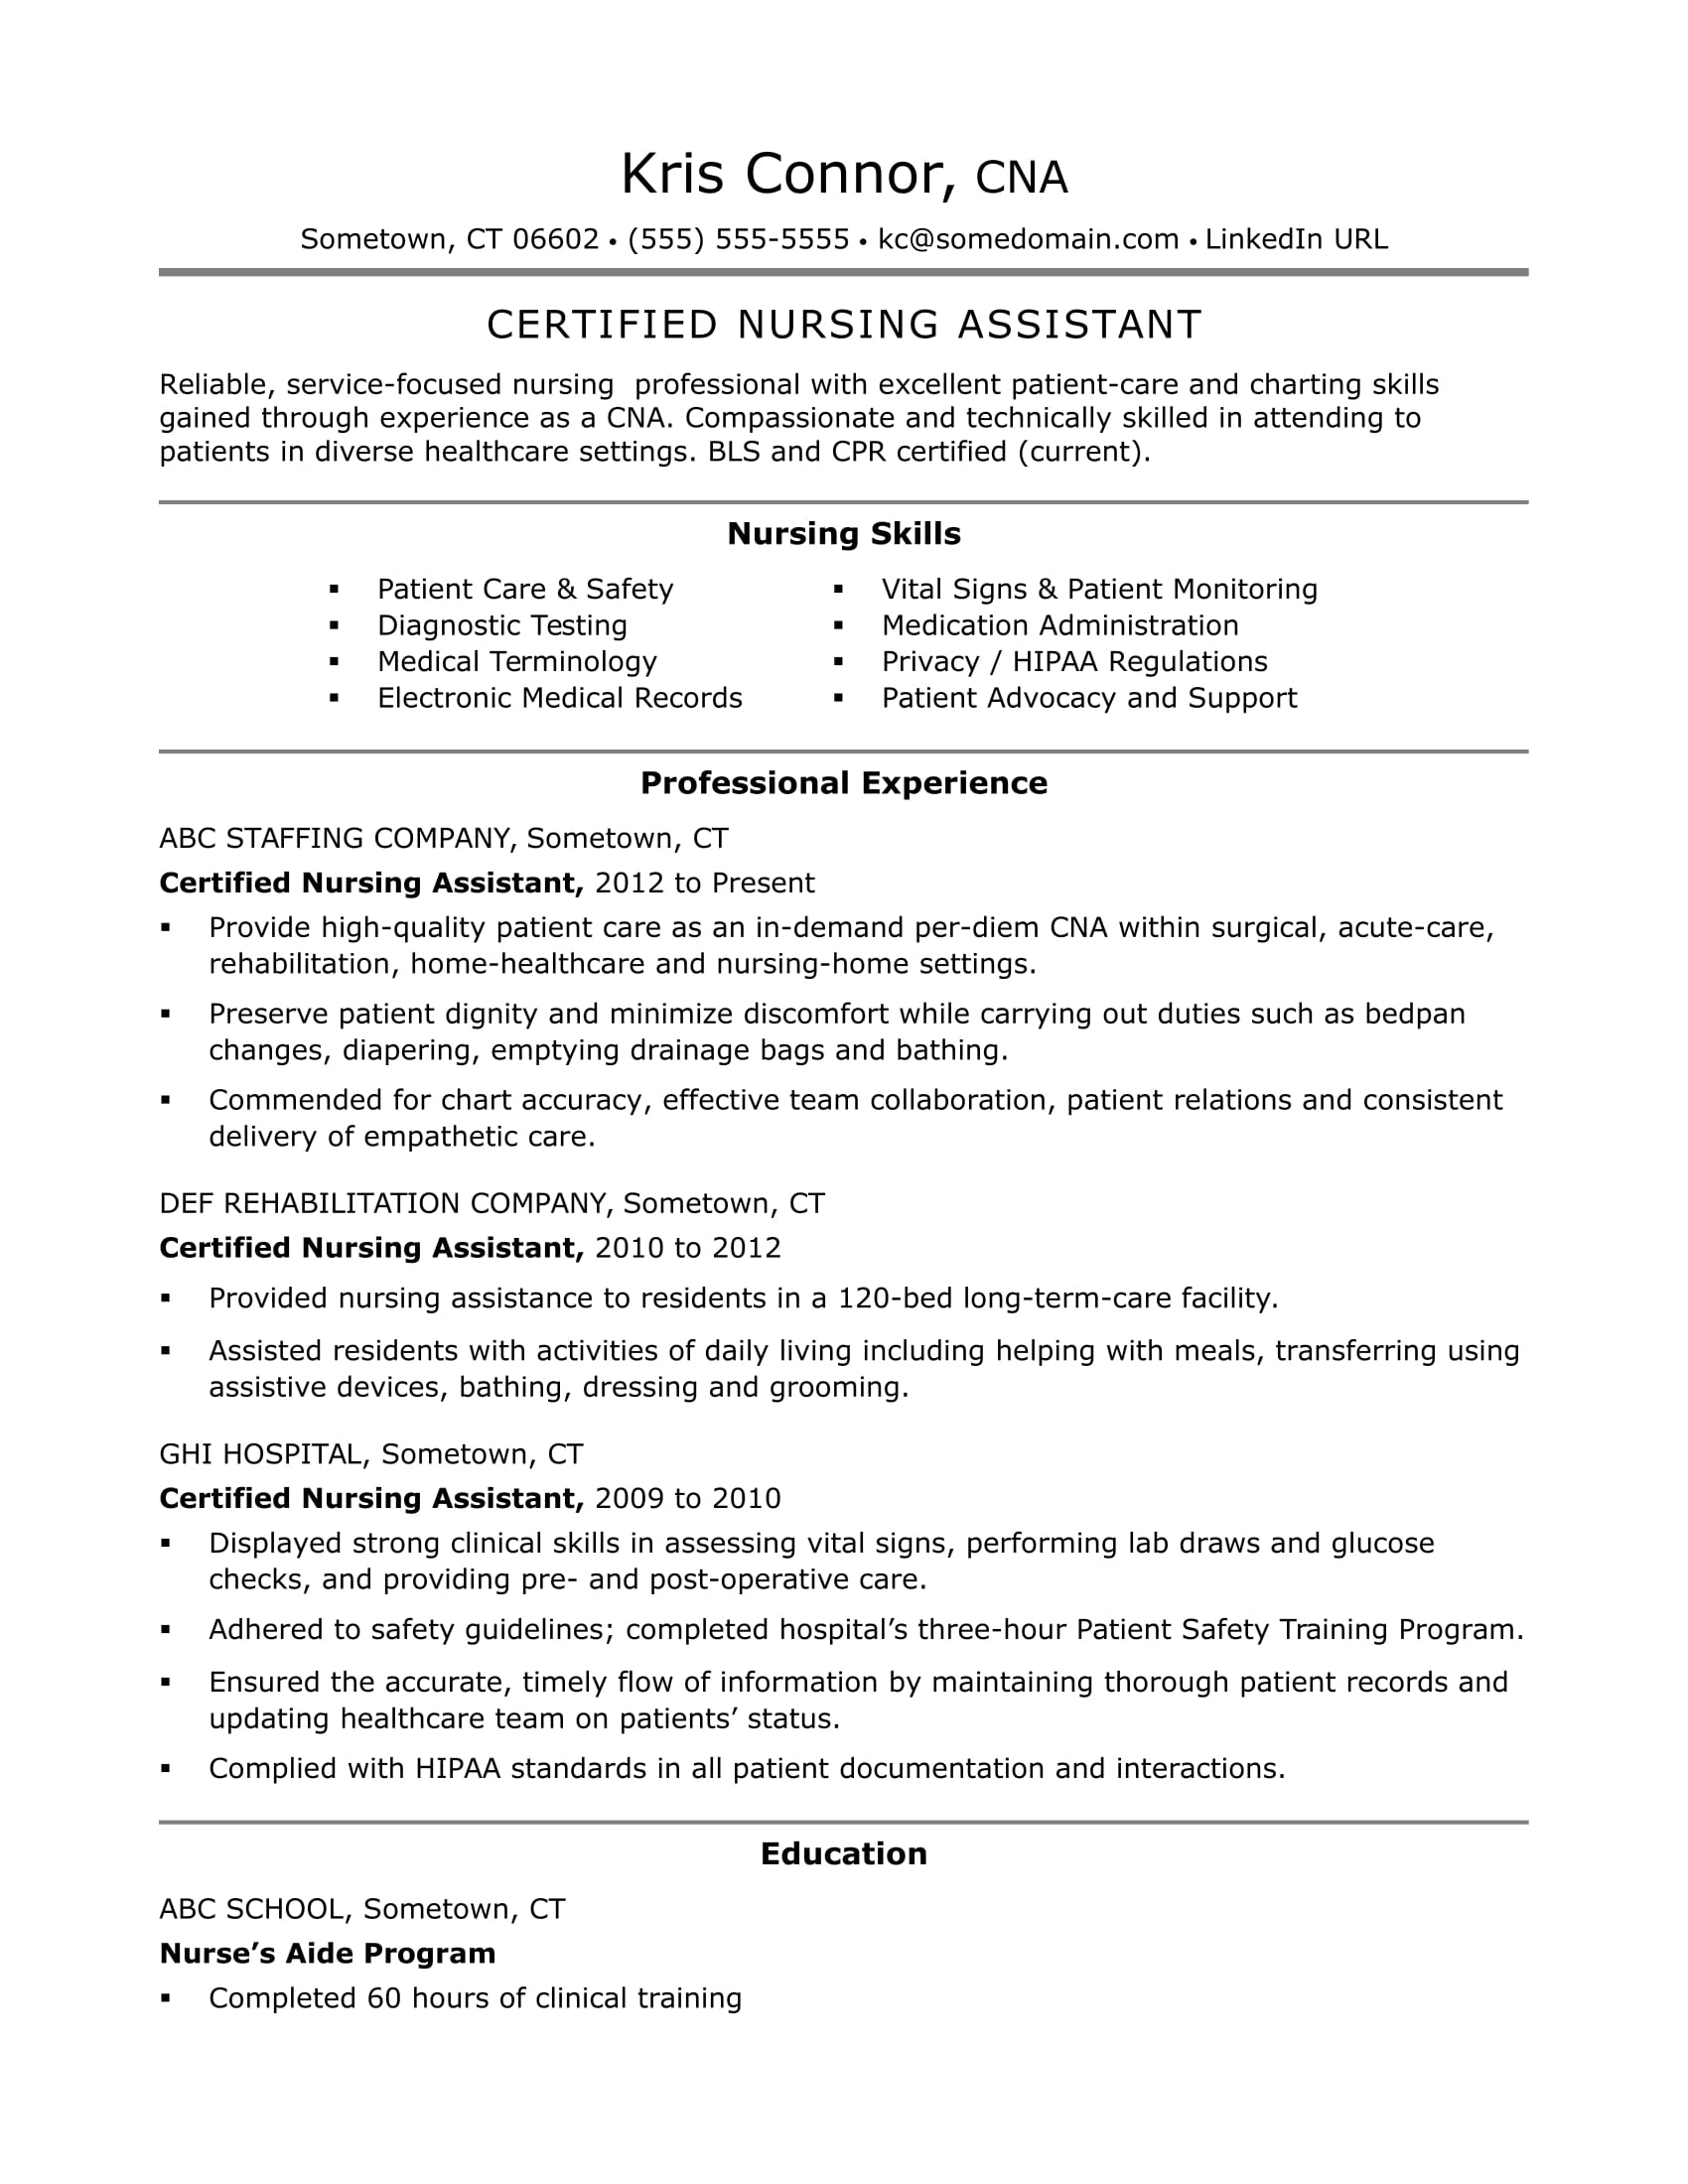 How To Fill Out Skills On A Resume Cna Resume Examples Skills For Cnas Monster